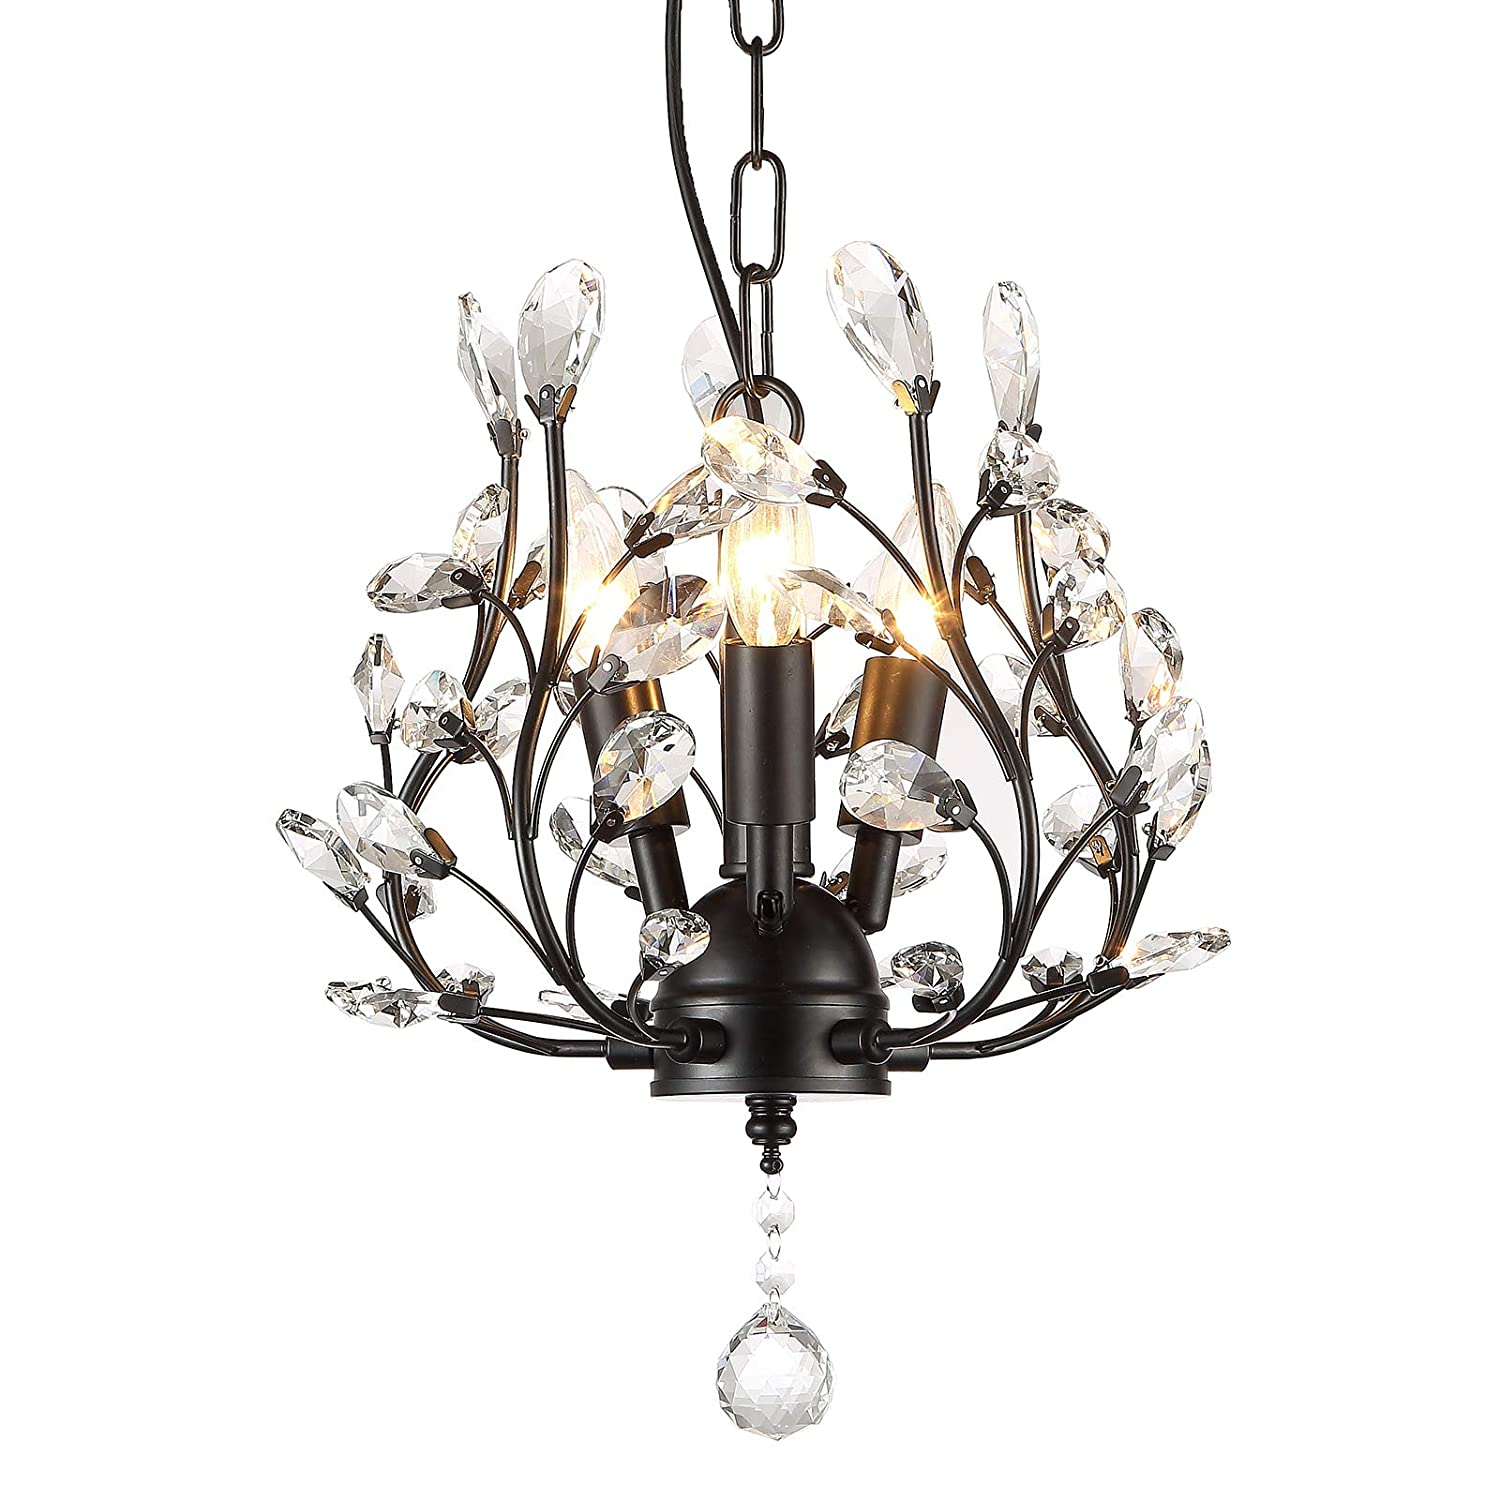 Seol light farmhouse crystal branch chandelier pendant hanging lighting fixture small size flush mount 120w with 3 socket black for bedroomfoyerkitchen